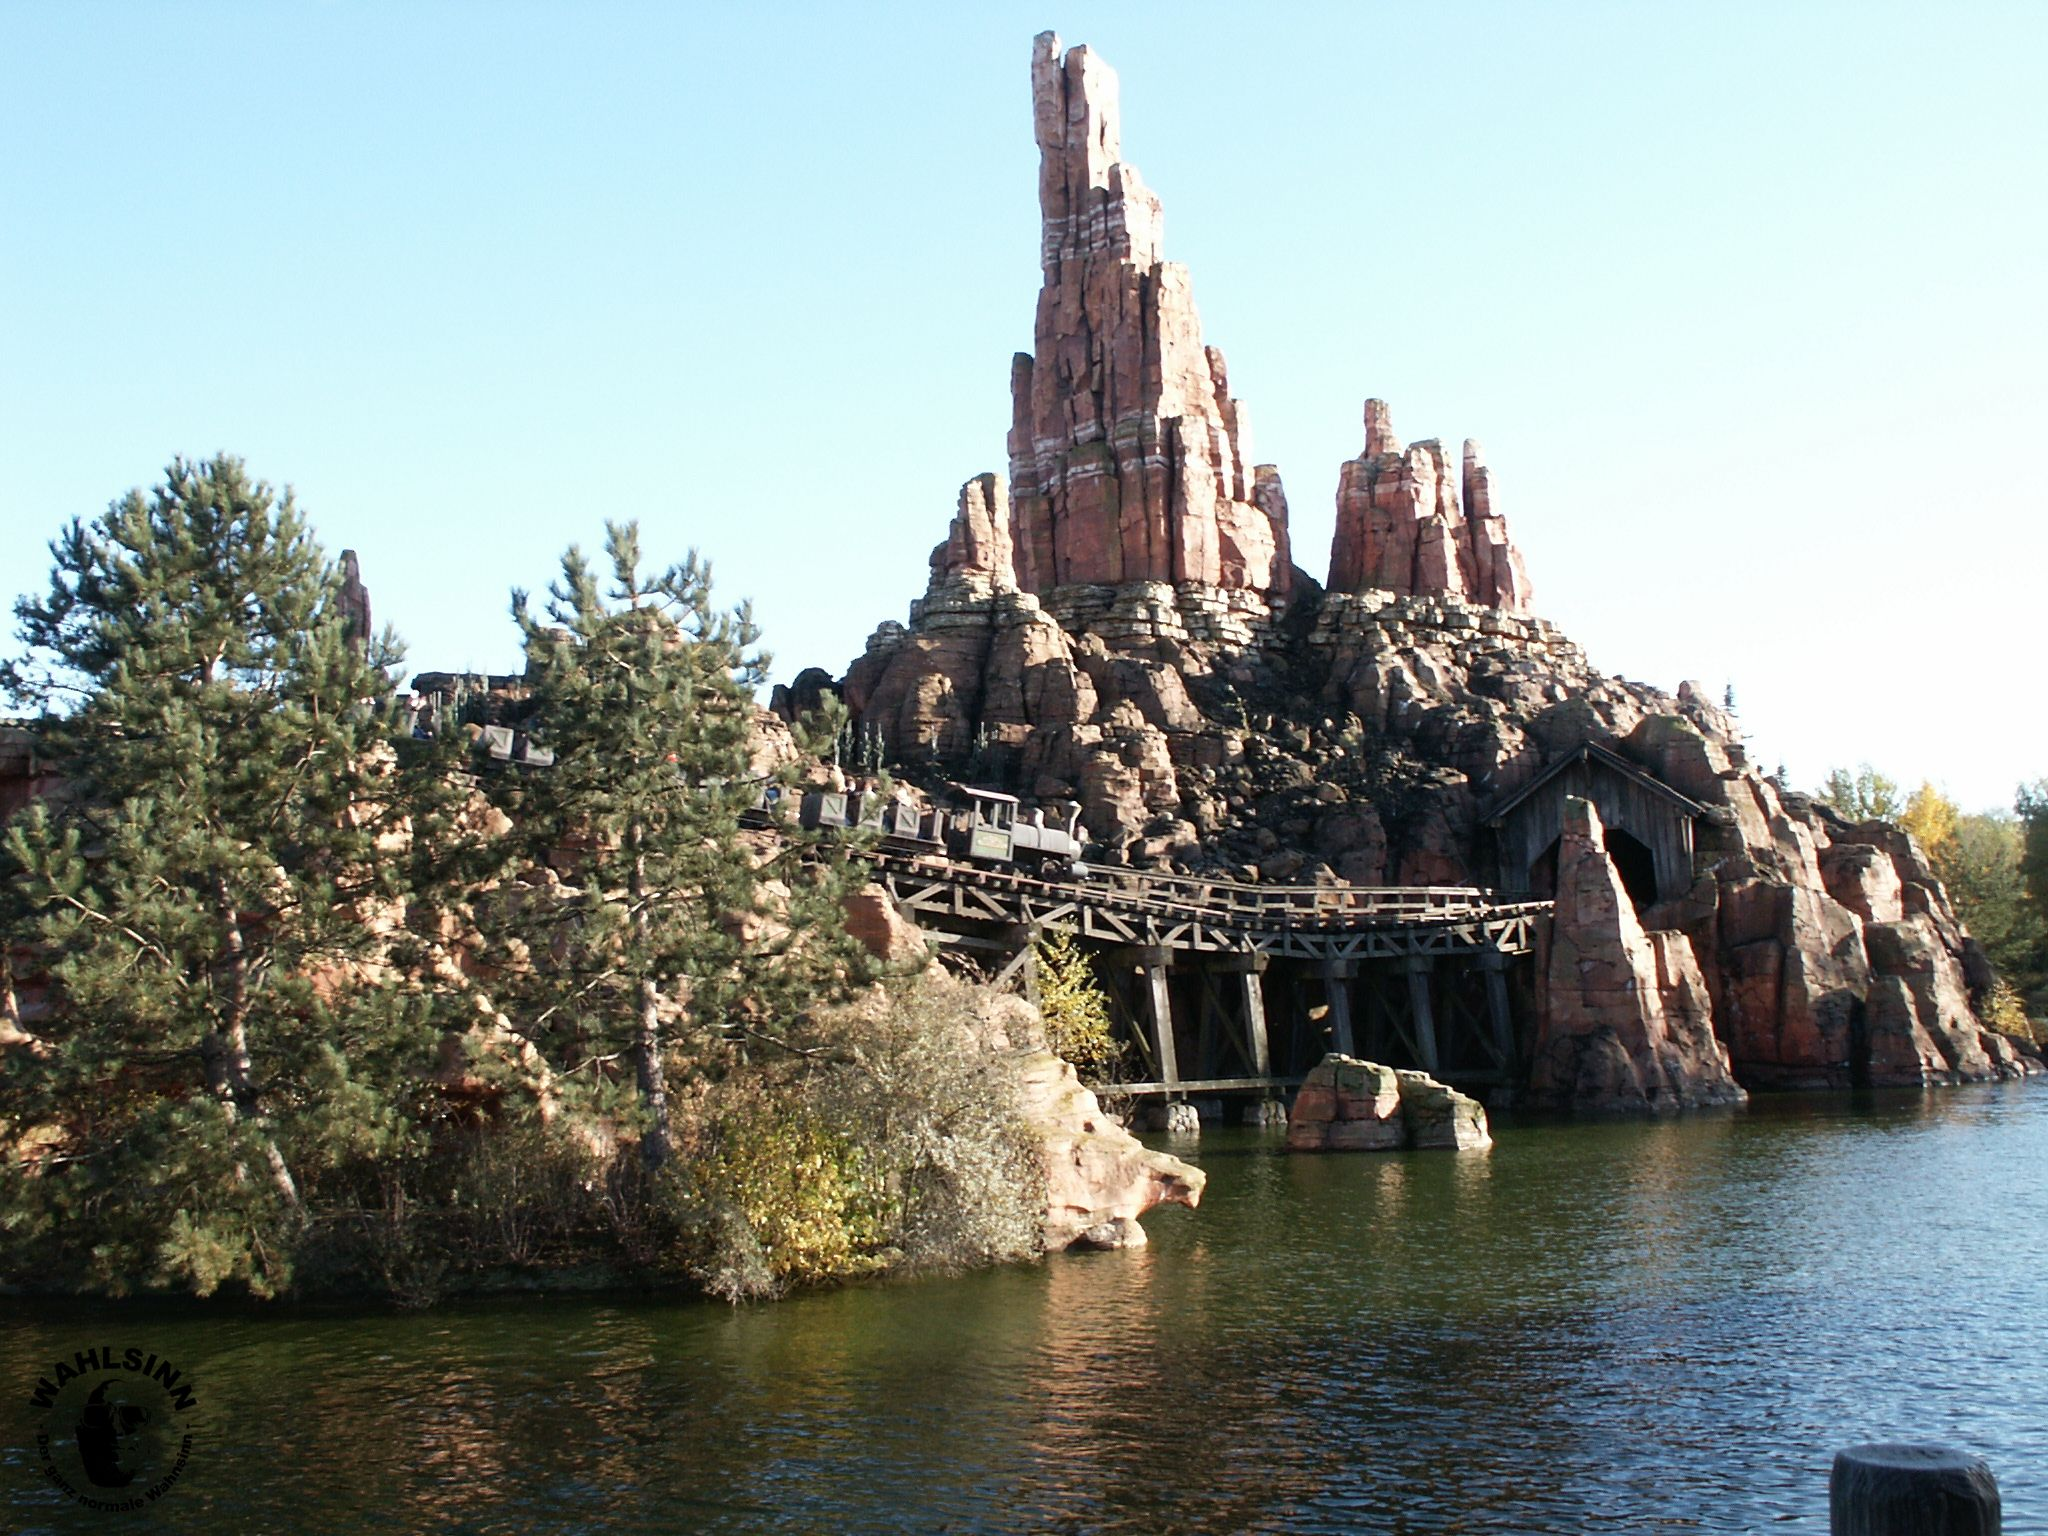 Disneyland Paris - Big Thunder Mountain Achterbahn